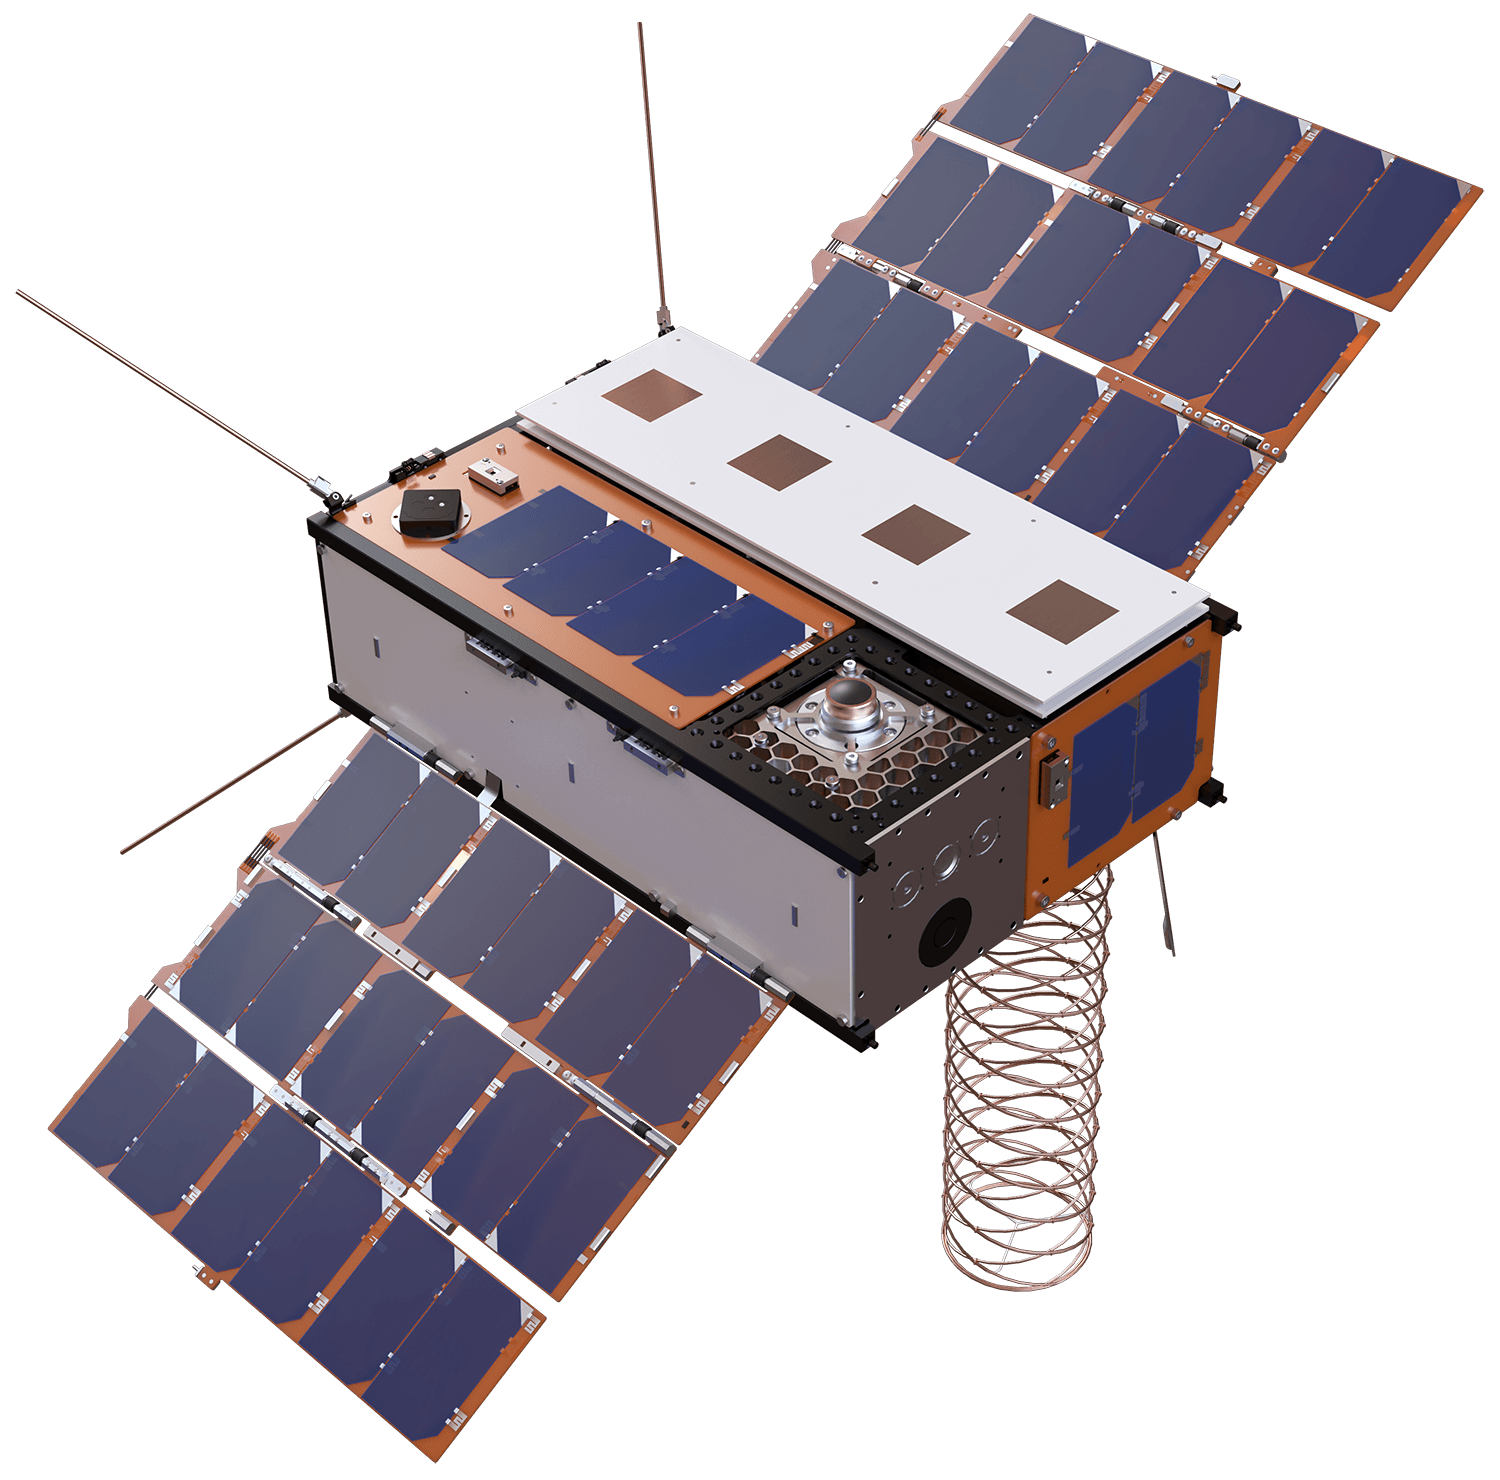 A 3D model of the Faraday Pheonix small sat including cube satellite hosted payloads - In-Space Mission